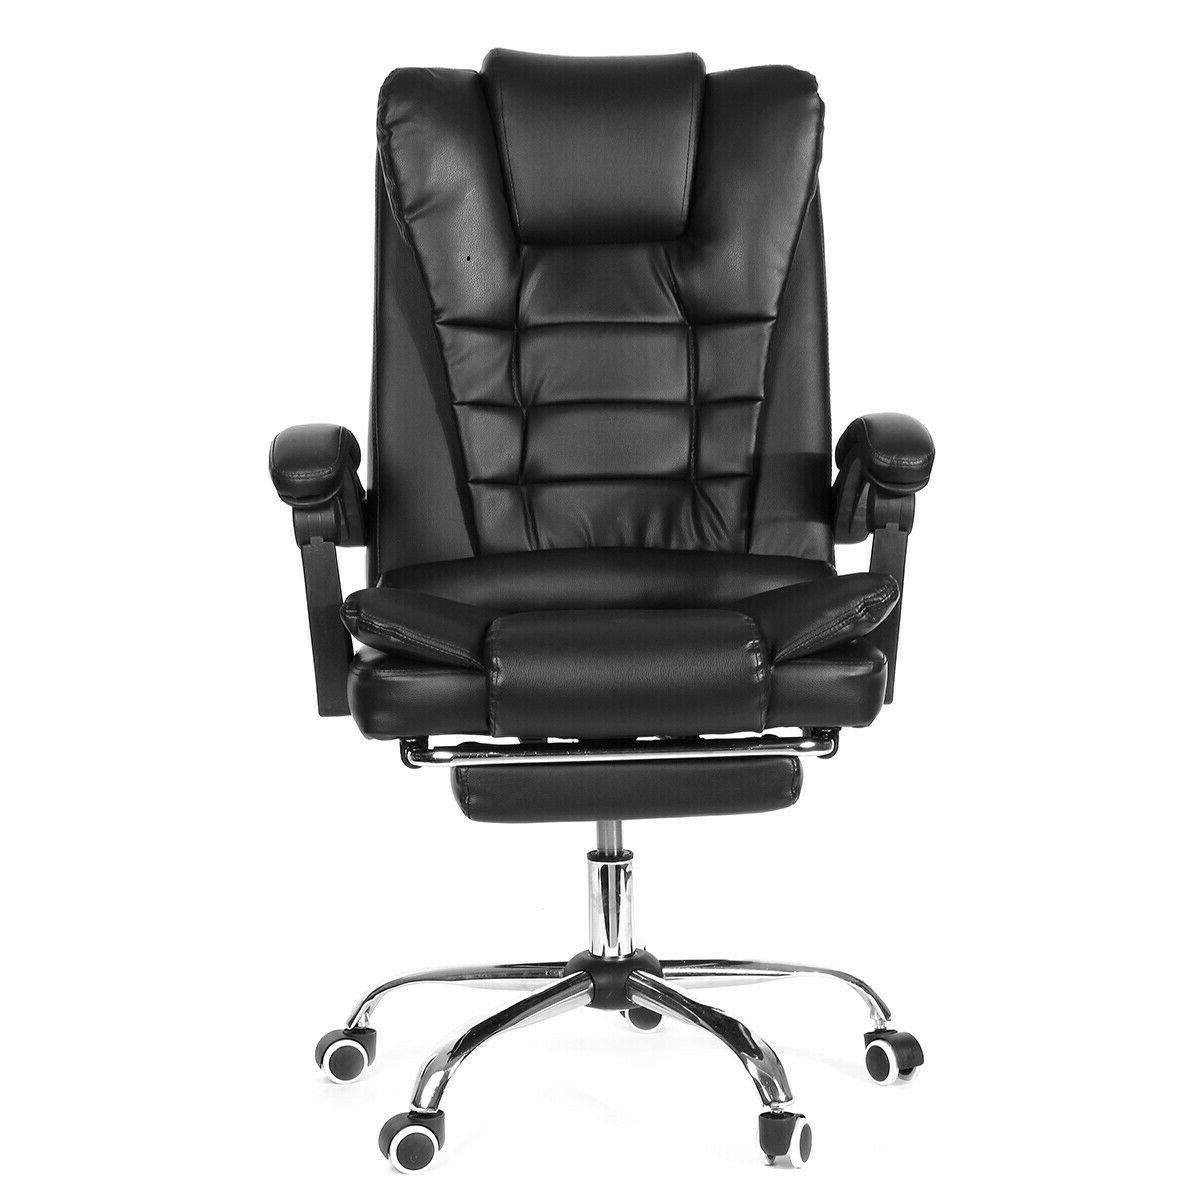 executive office chair racing gaming leather high